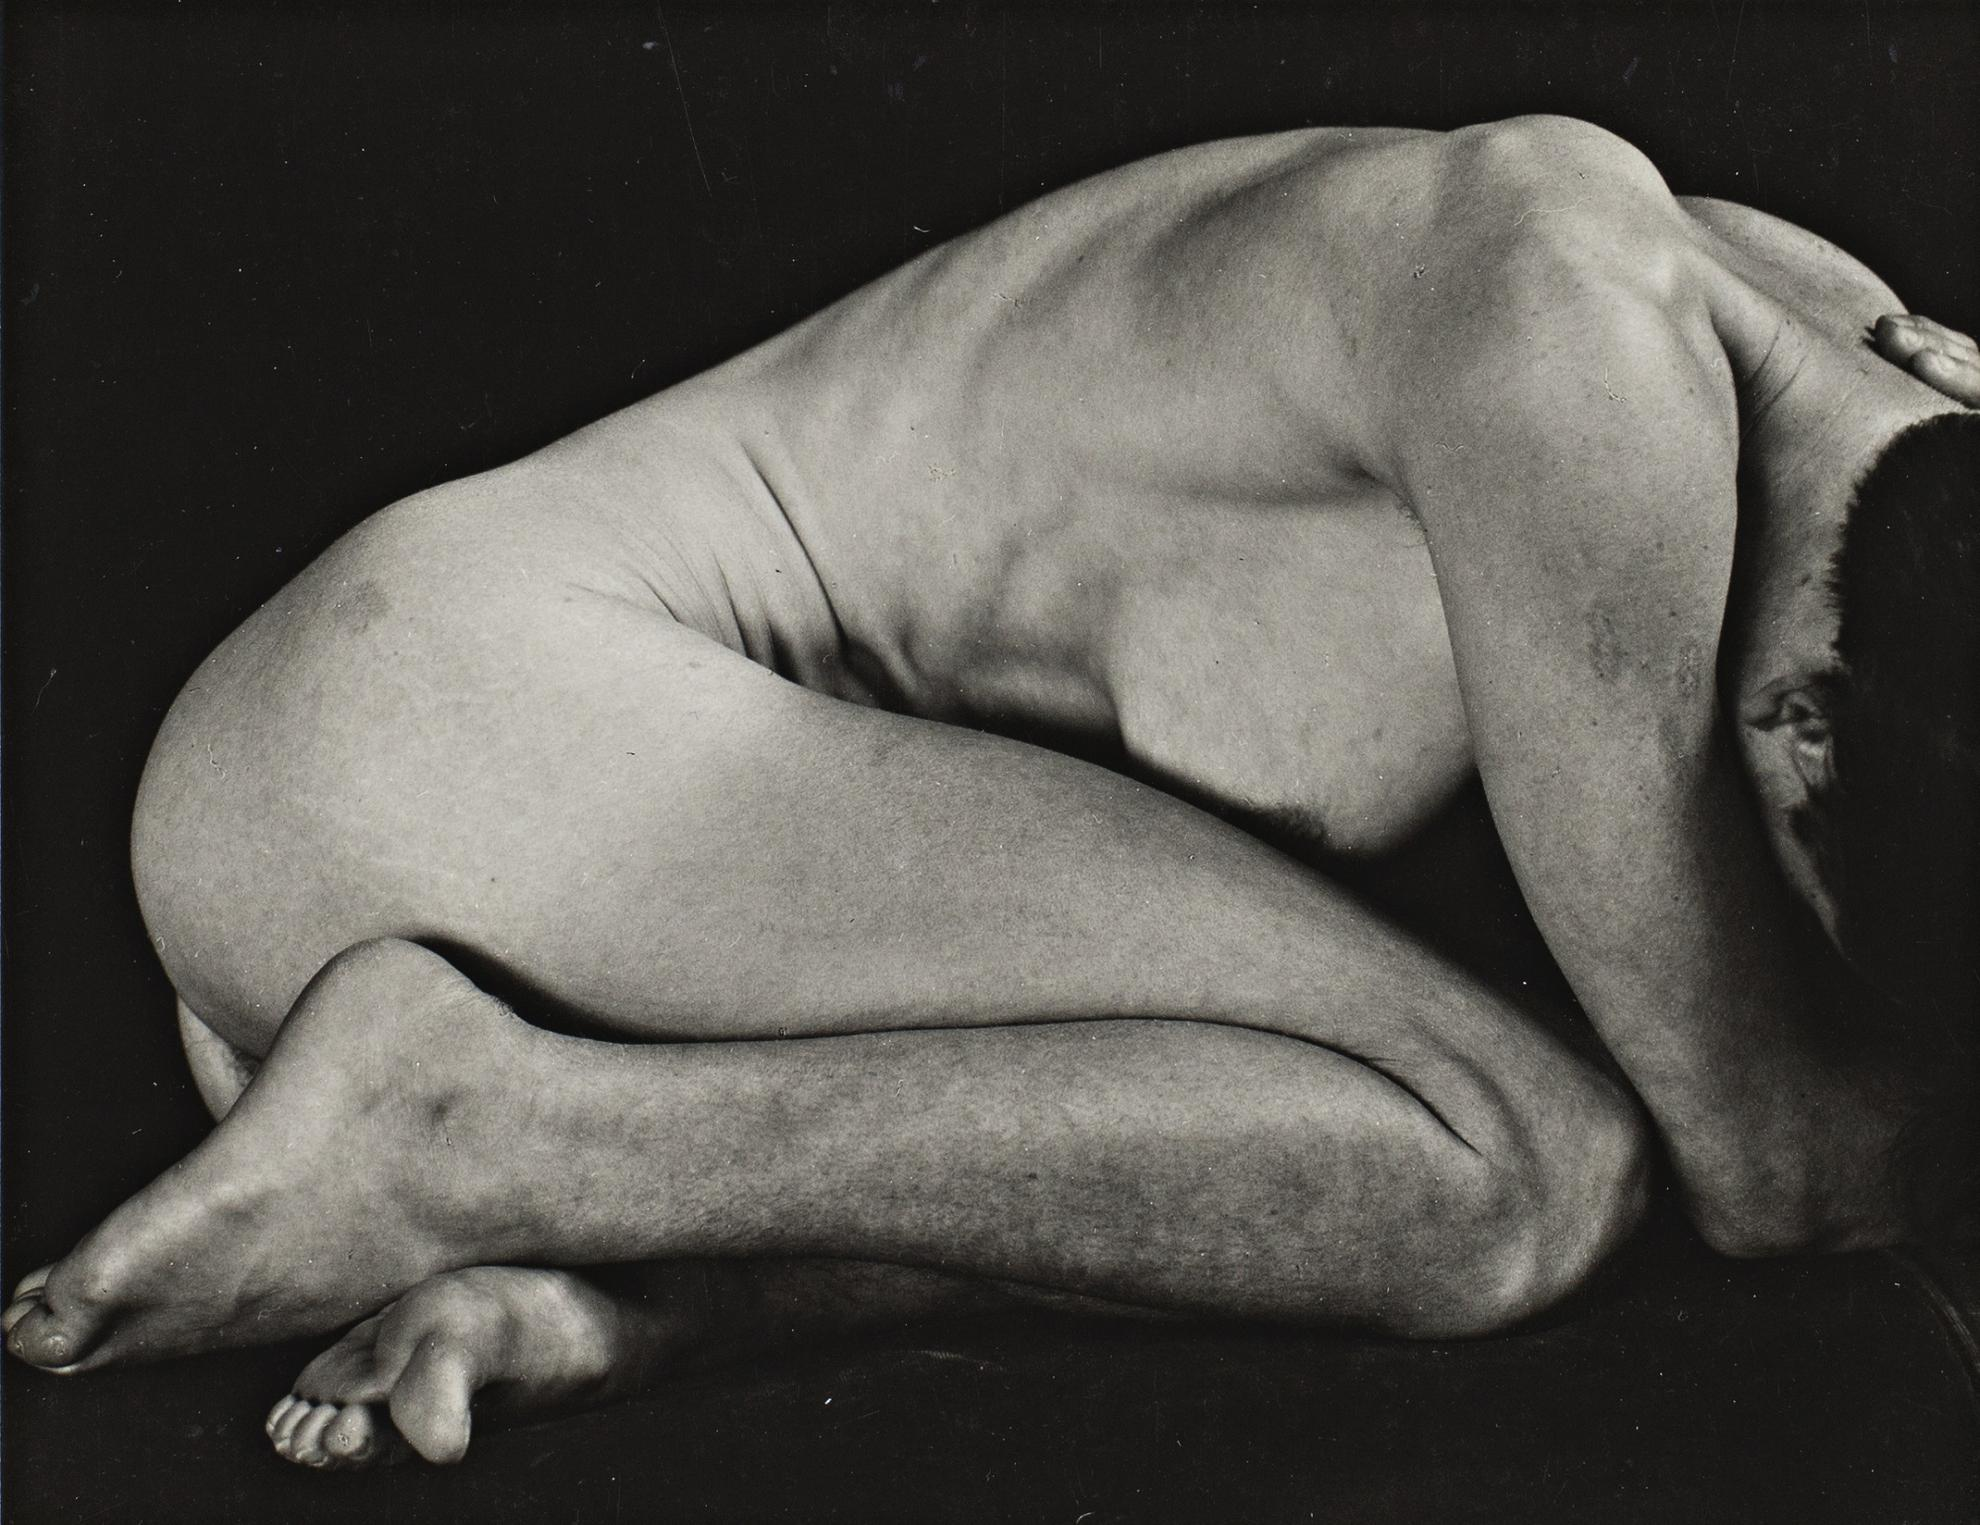 Edward Weston-Sonya-1933